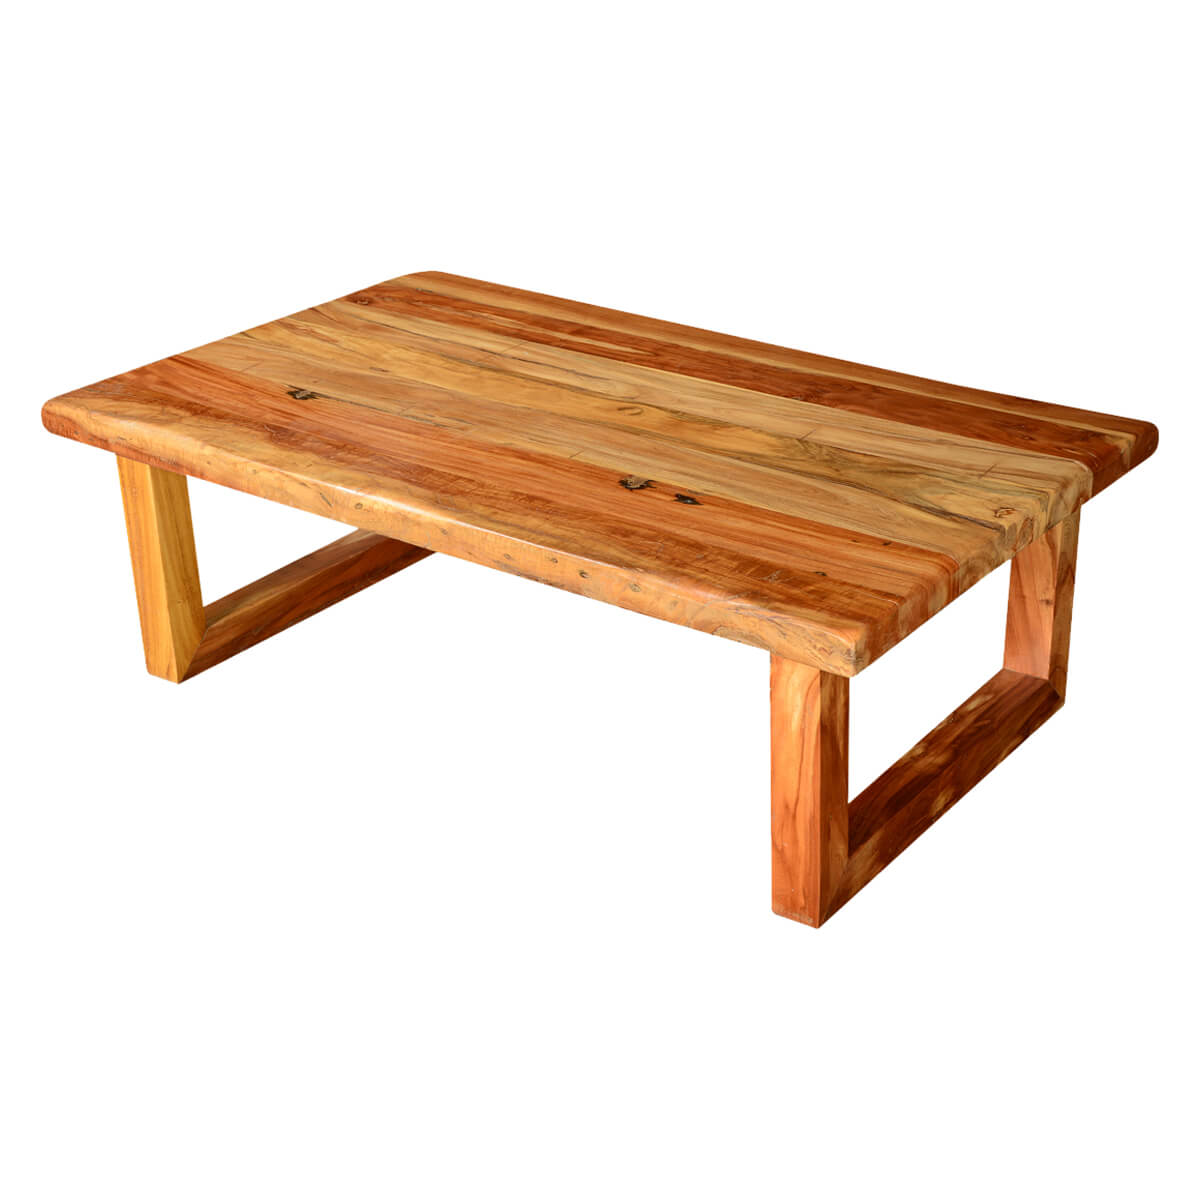 Modern rustic simplicity acacia wood 51 coffee table Rustic wooden coffee tables